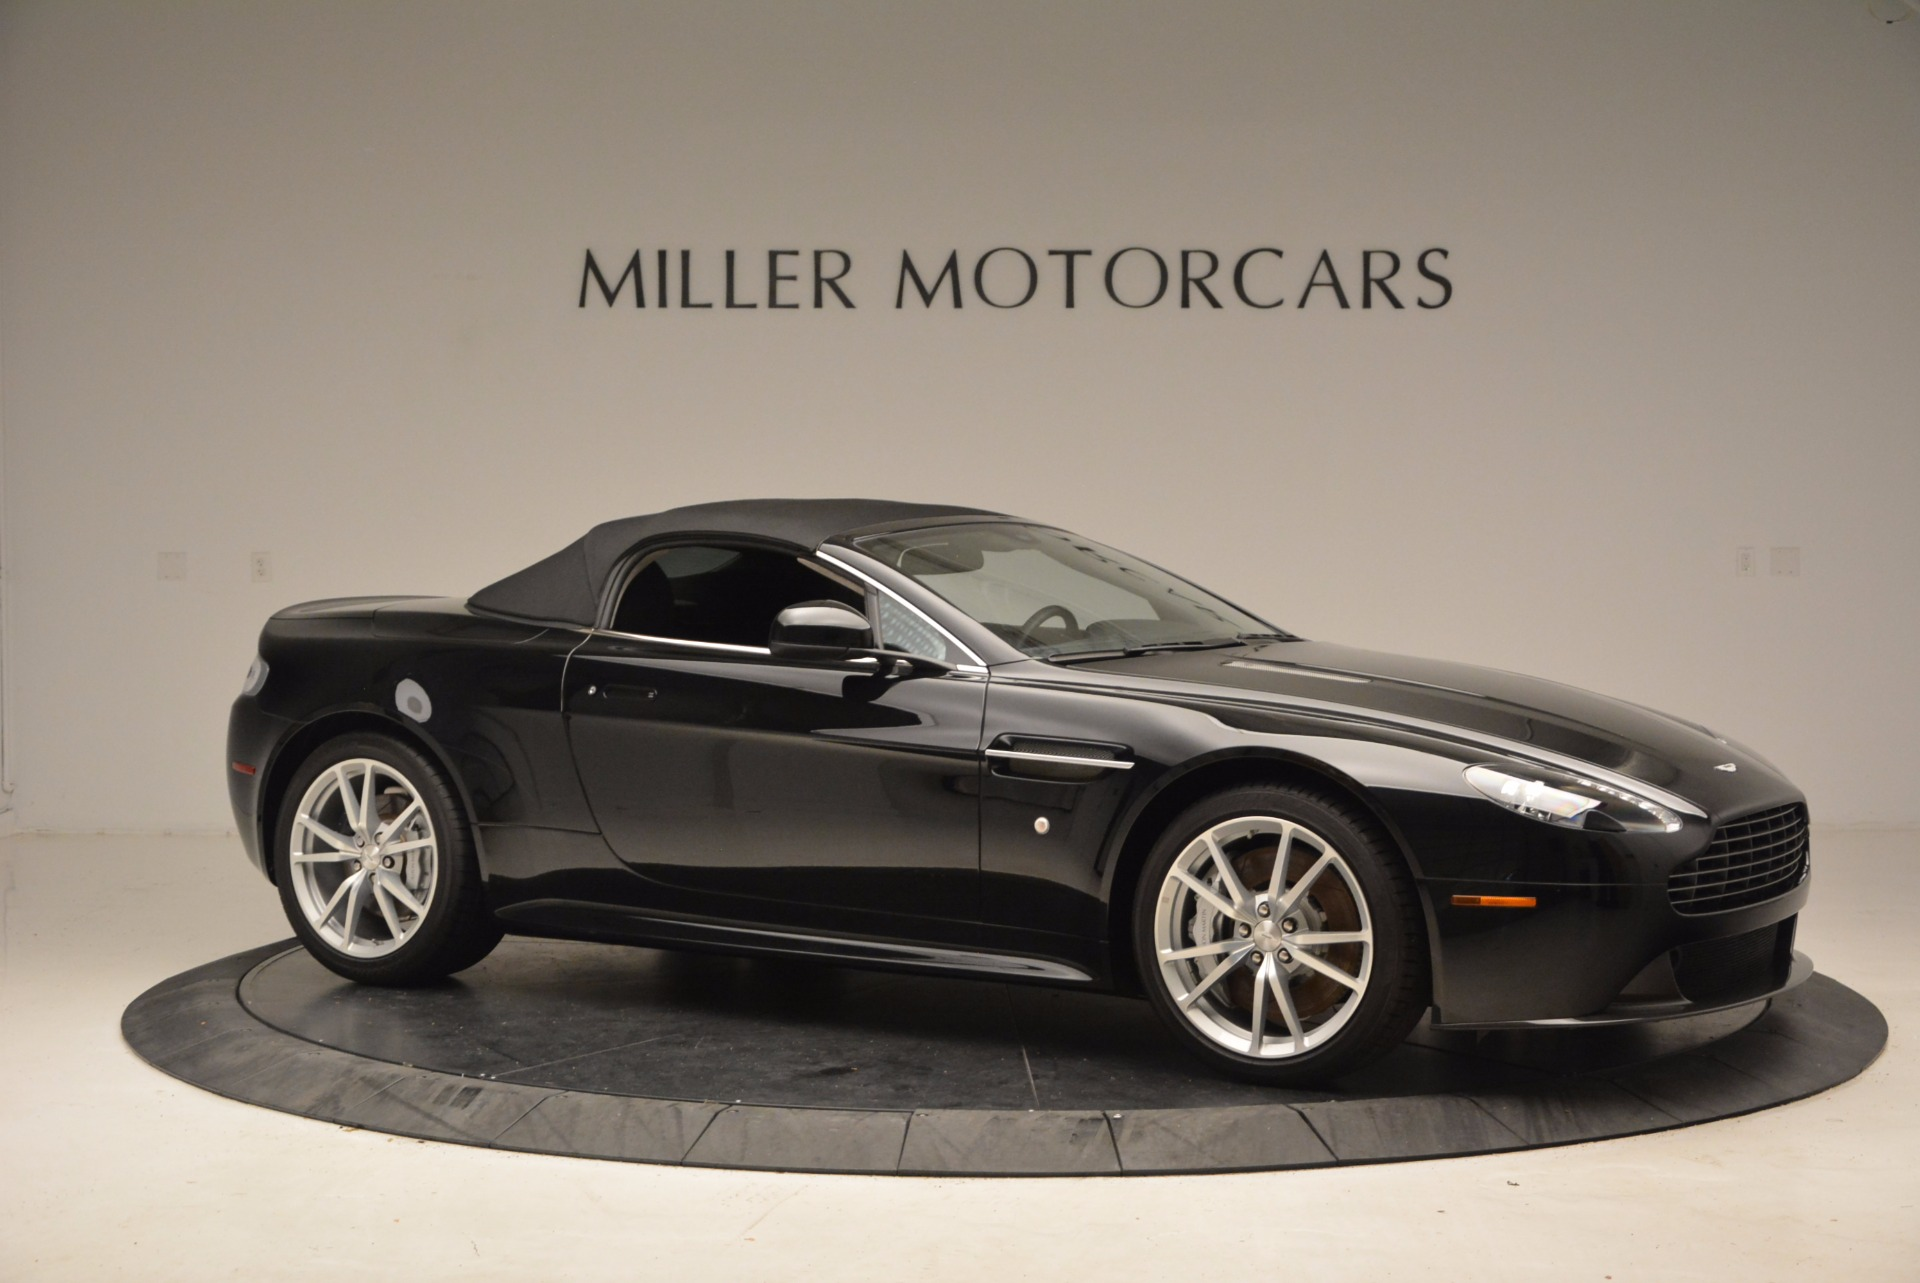 New 2016 Aston Martin V8 Vantage Roadster For Sale In Westport, CT 1546_p22